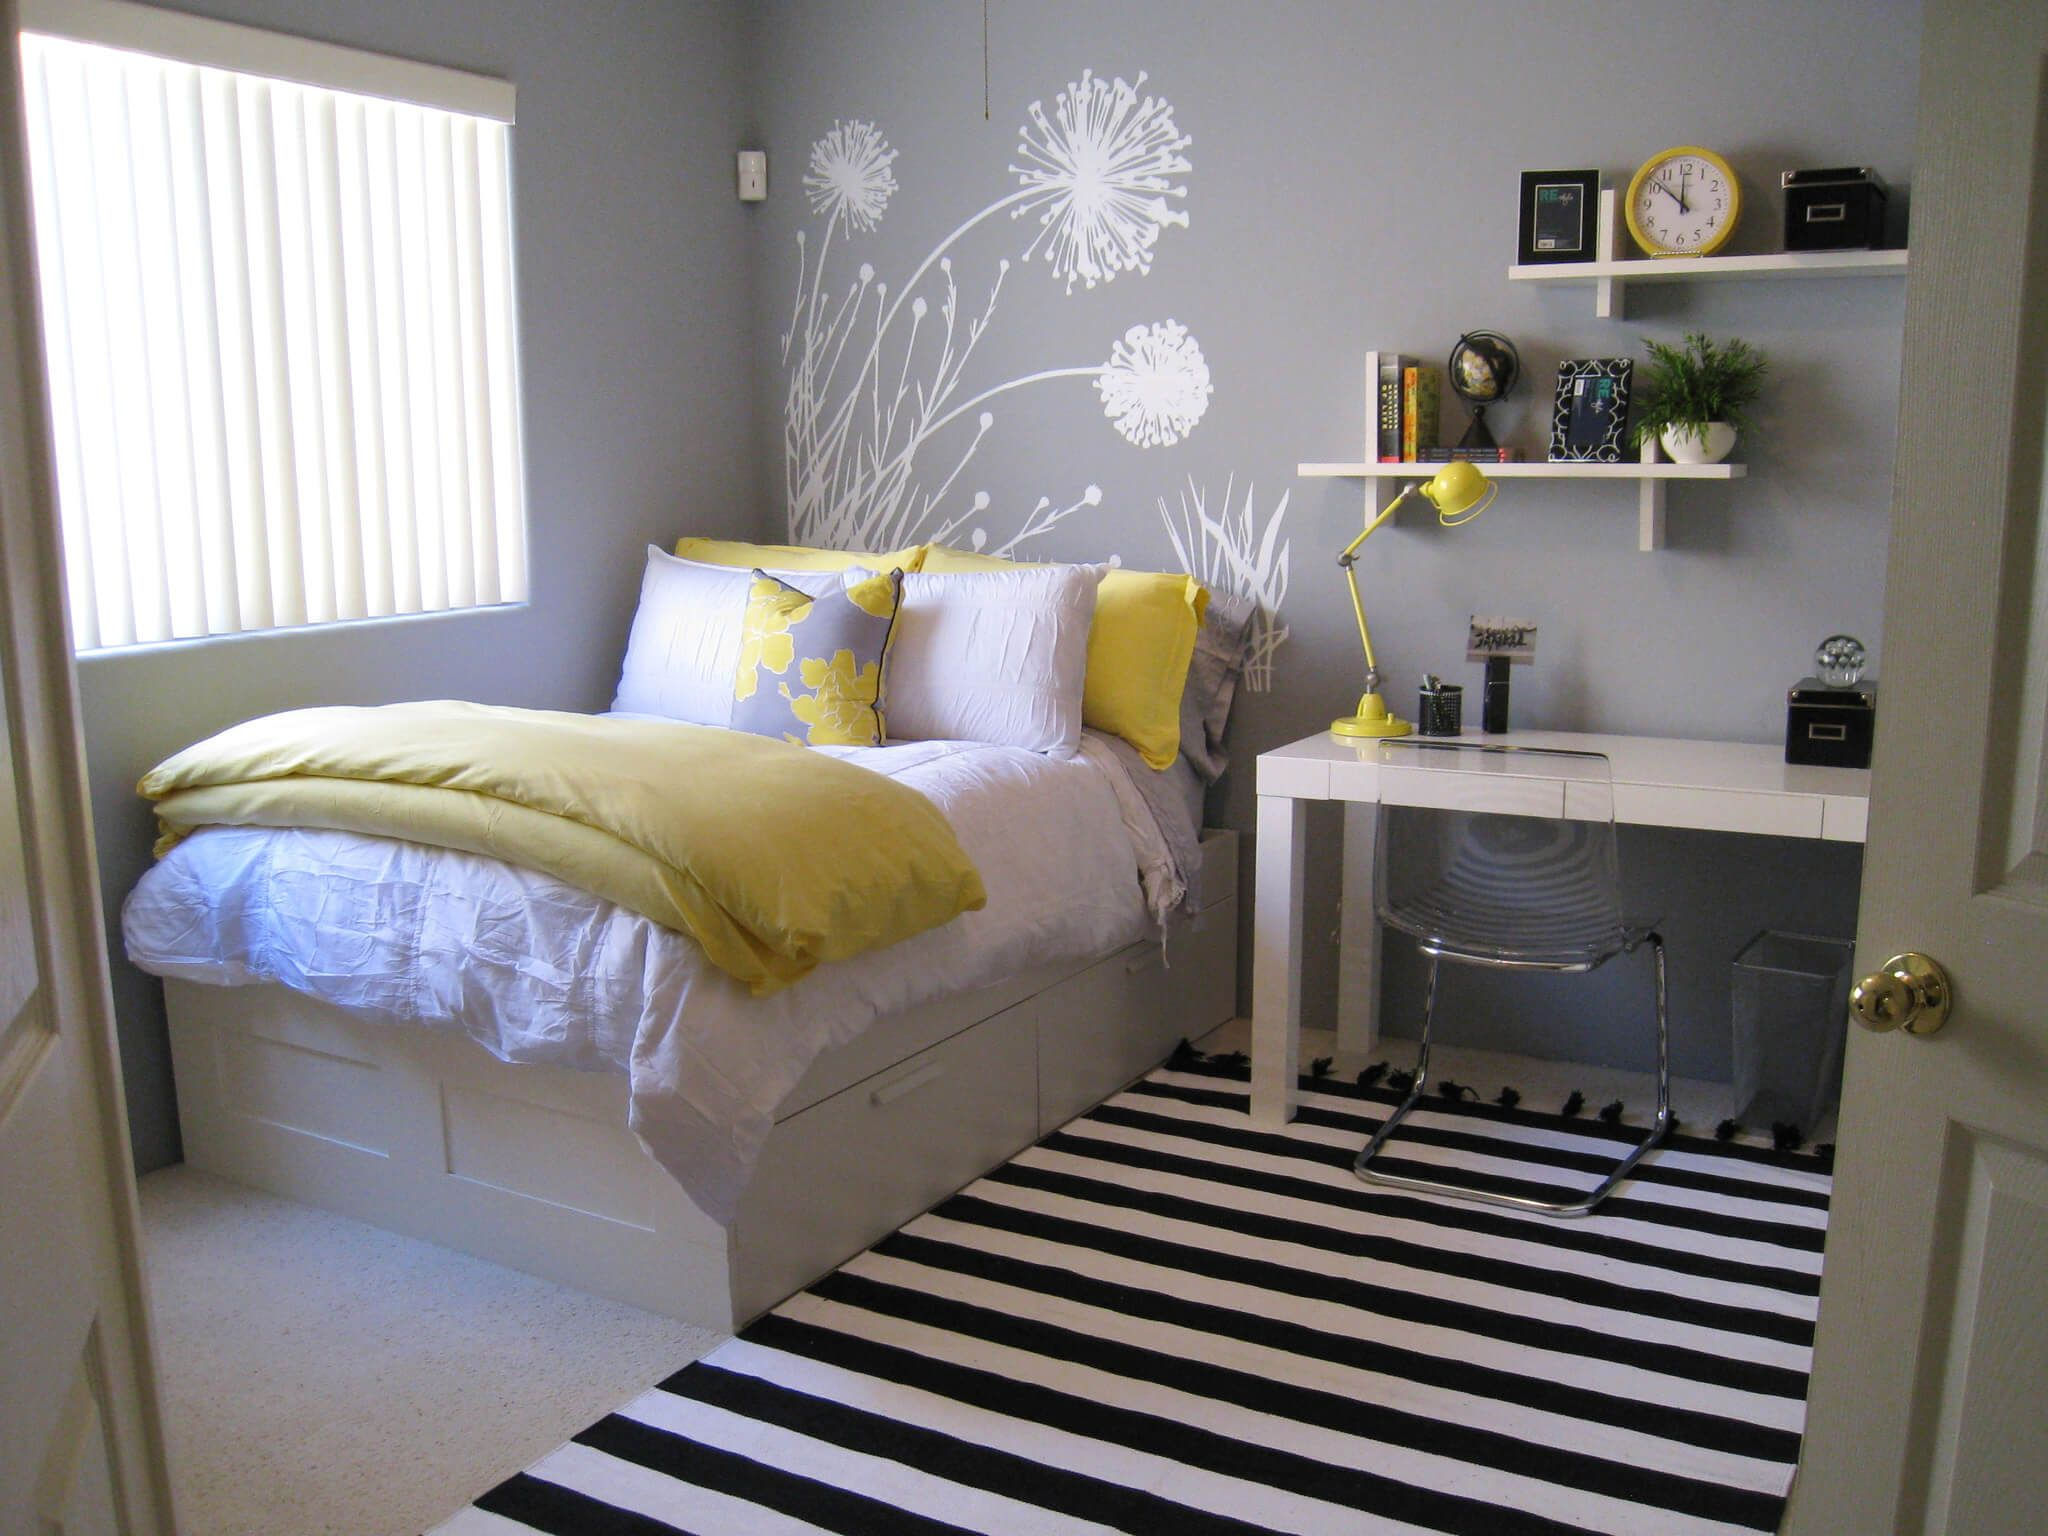 45 inspiring small bedrooms - Decor Ideas For A Small Bedroom